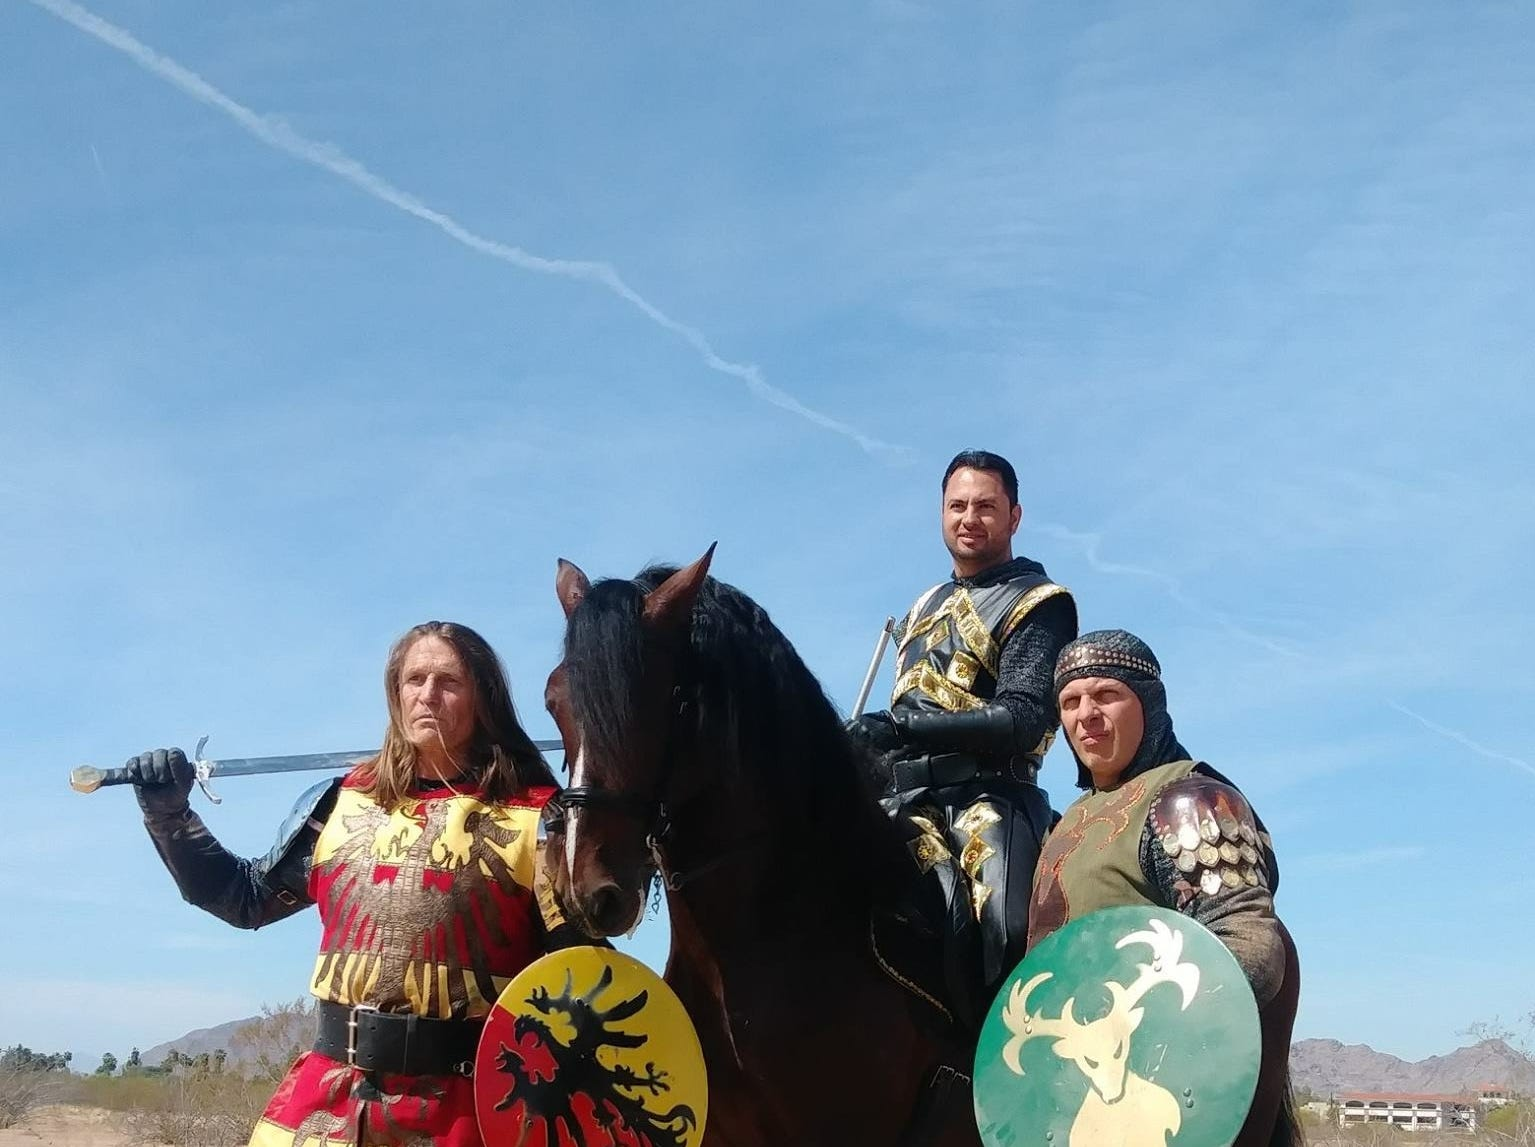 Three knights and a horse.